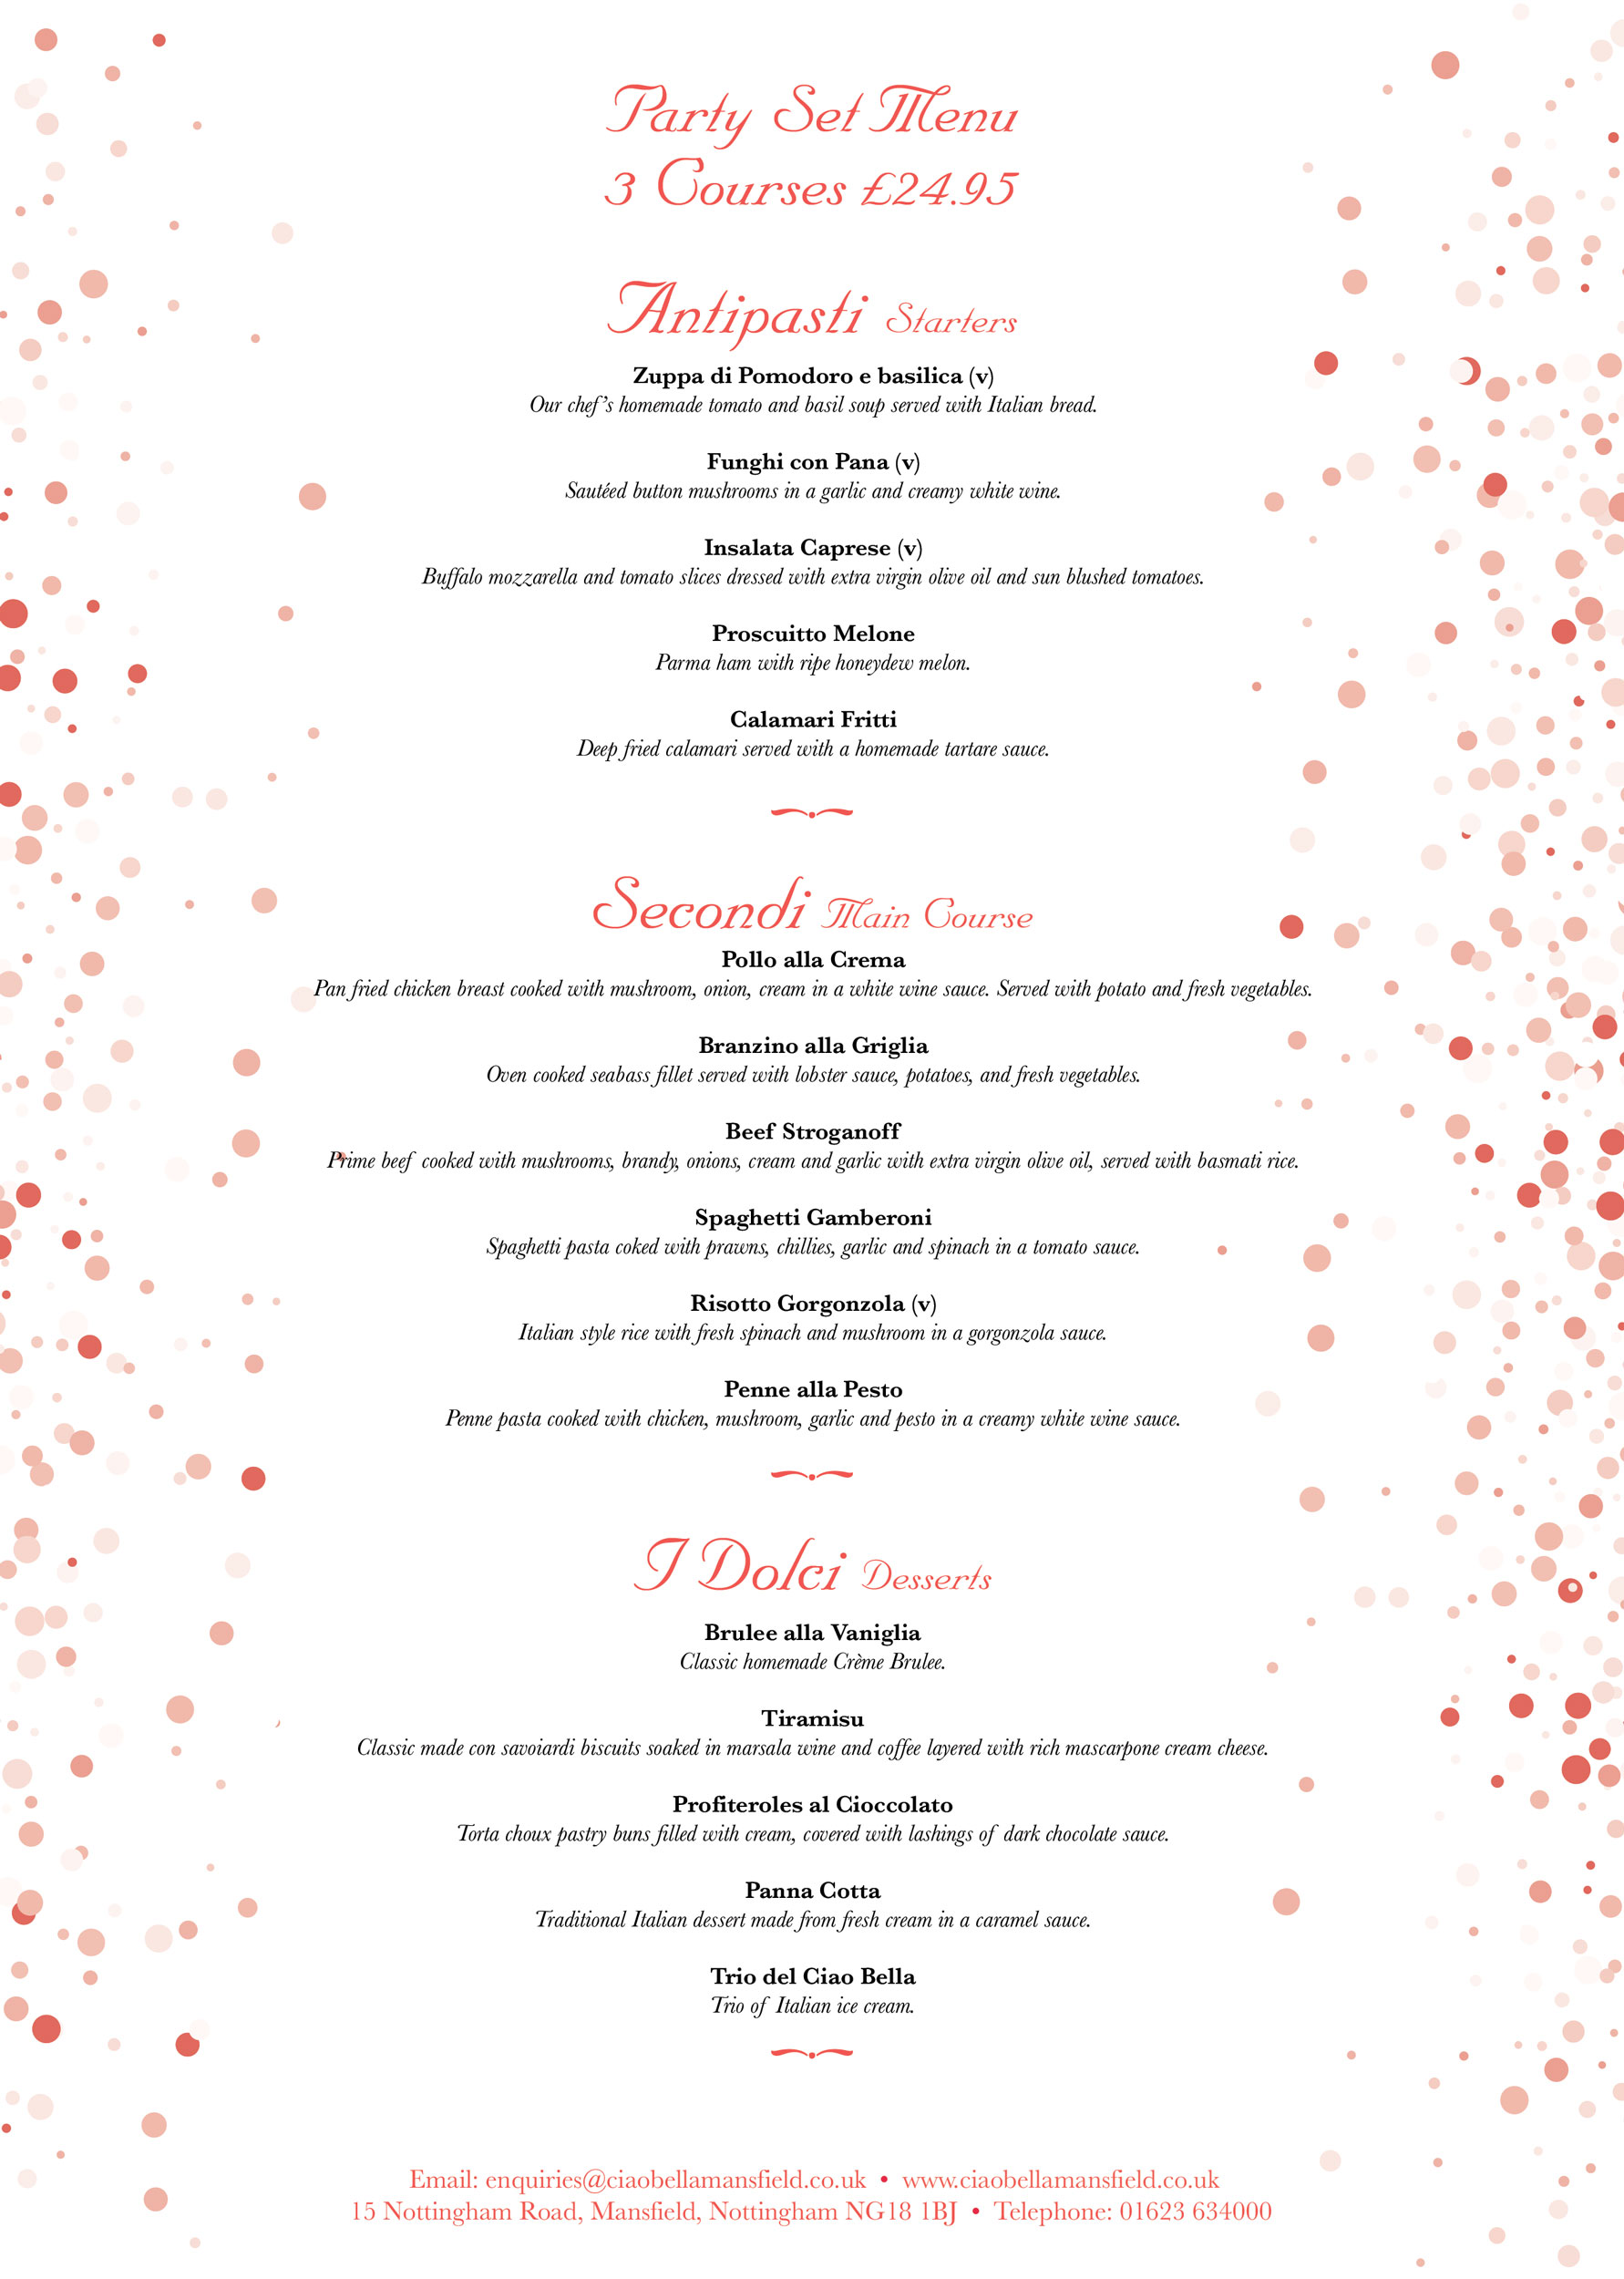 Party-Set-Menu